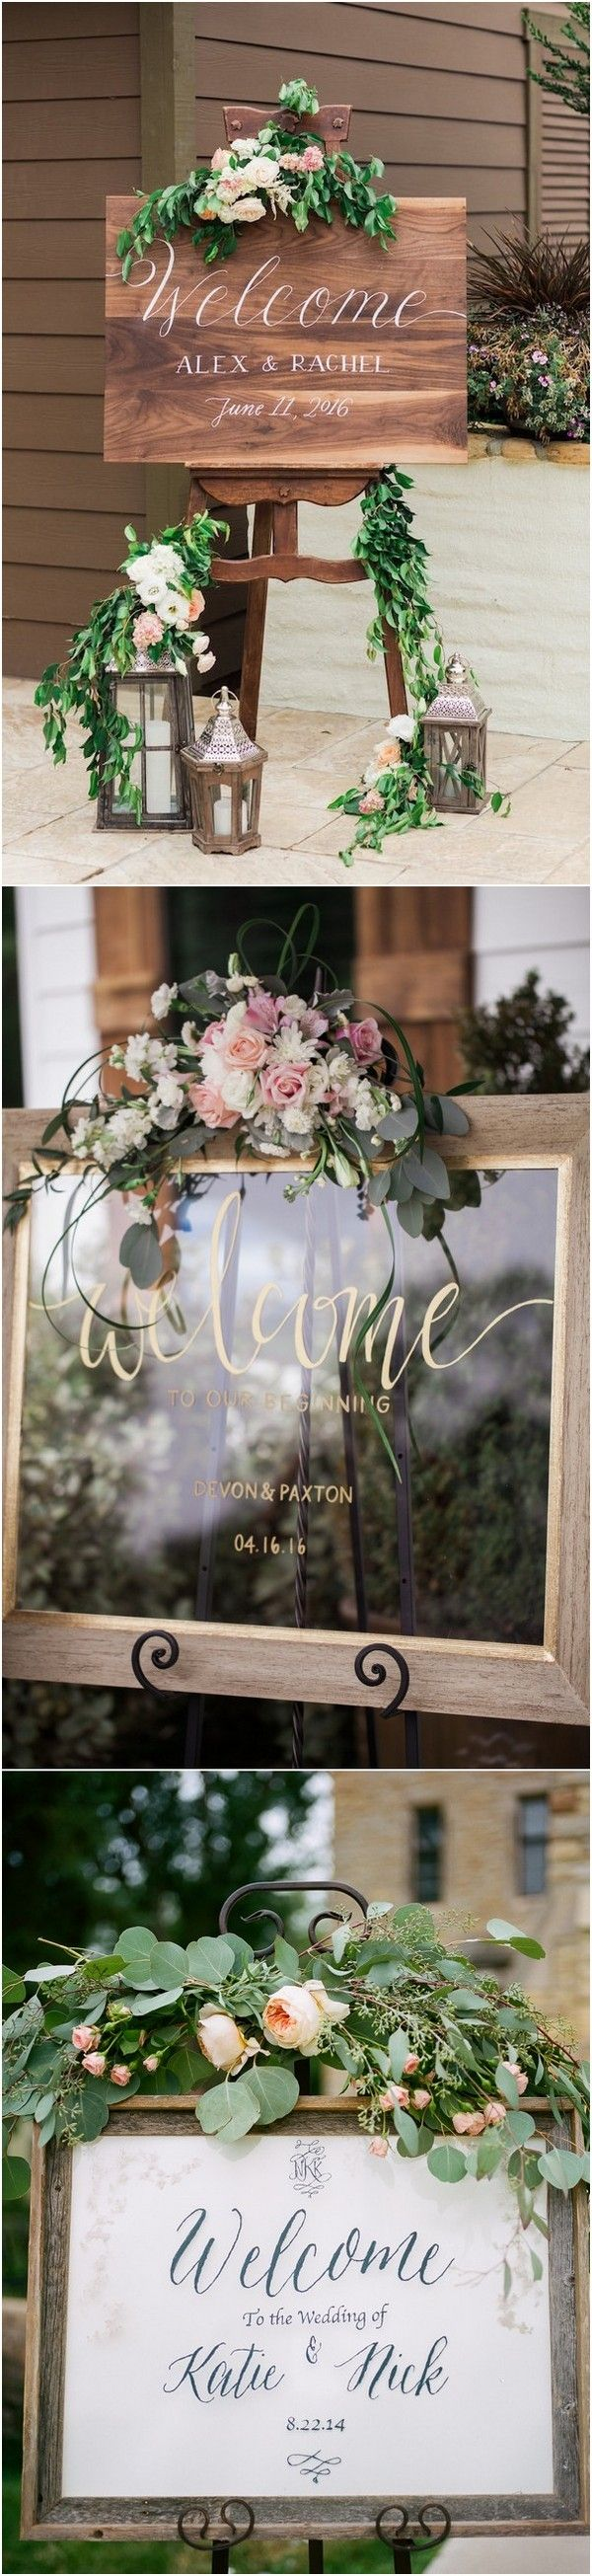 Chic rustic wedding welcome sign ideas cakes pinterest